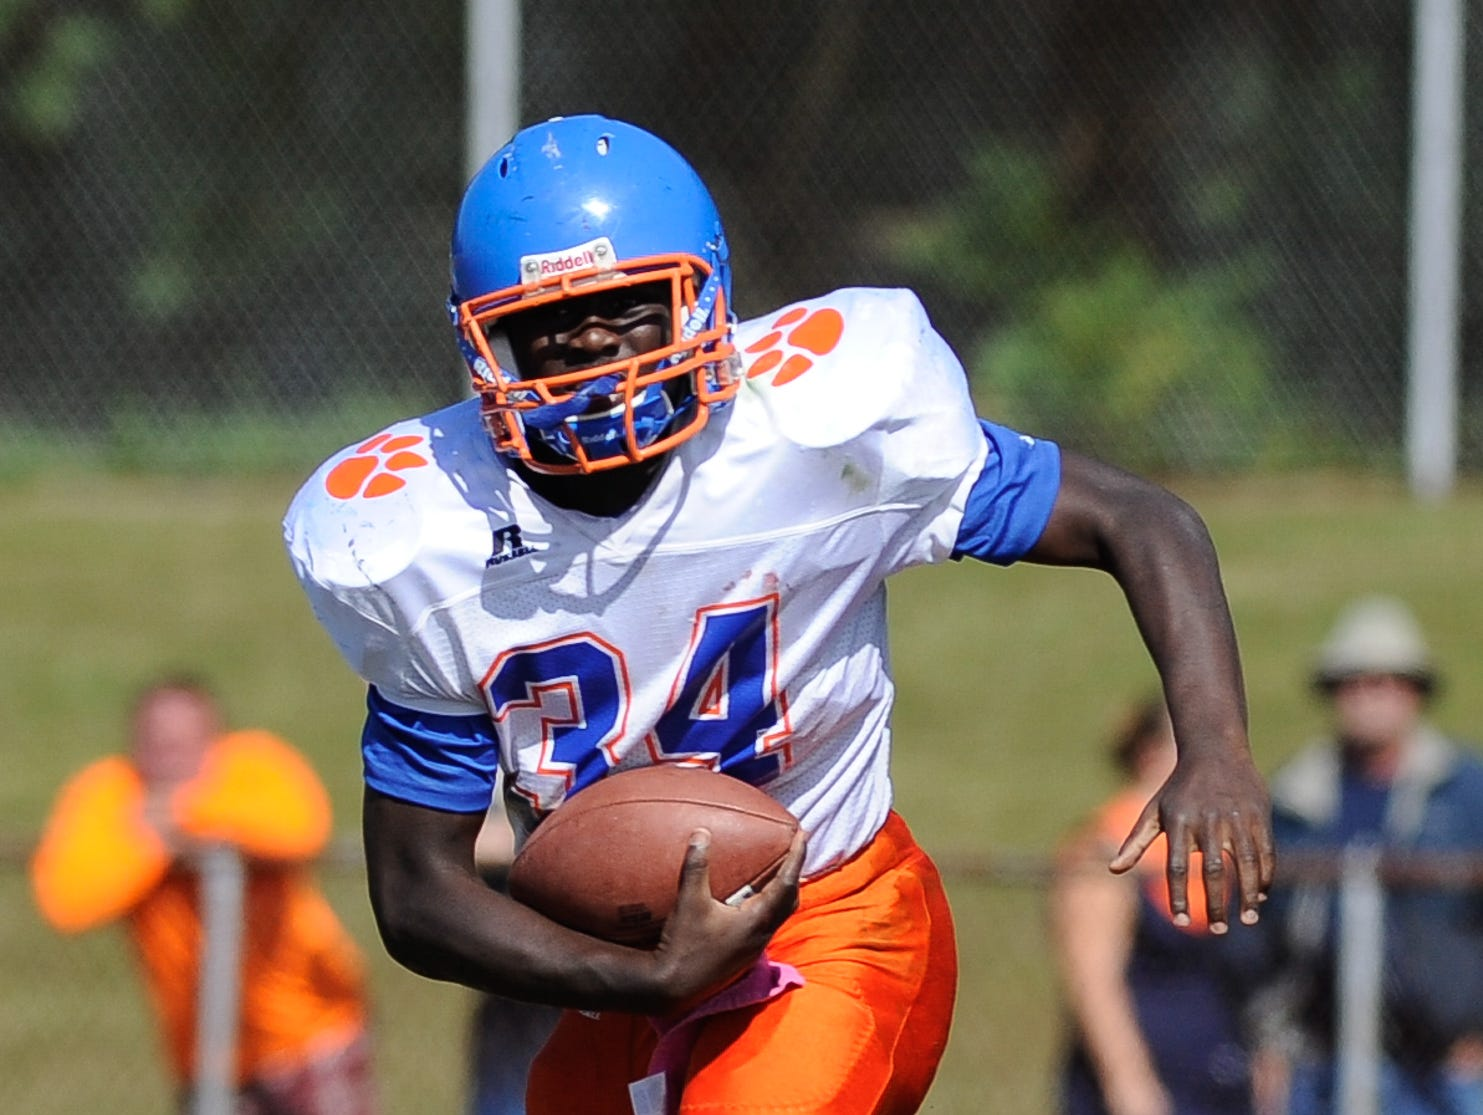 Delmar's #34 Brooks Parker runs the ball in their 19-14 lose against Lake Forest on Saturday at Lake Forest High School.